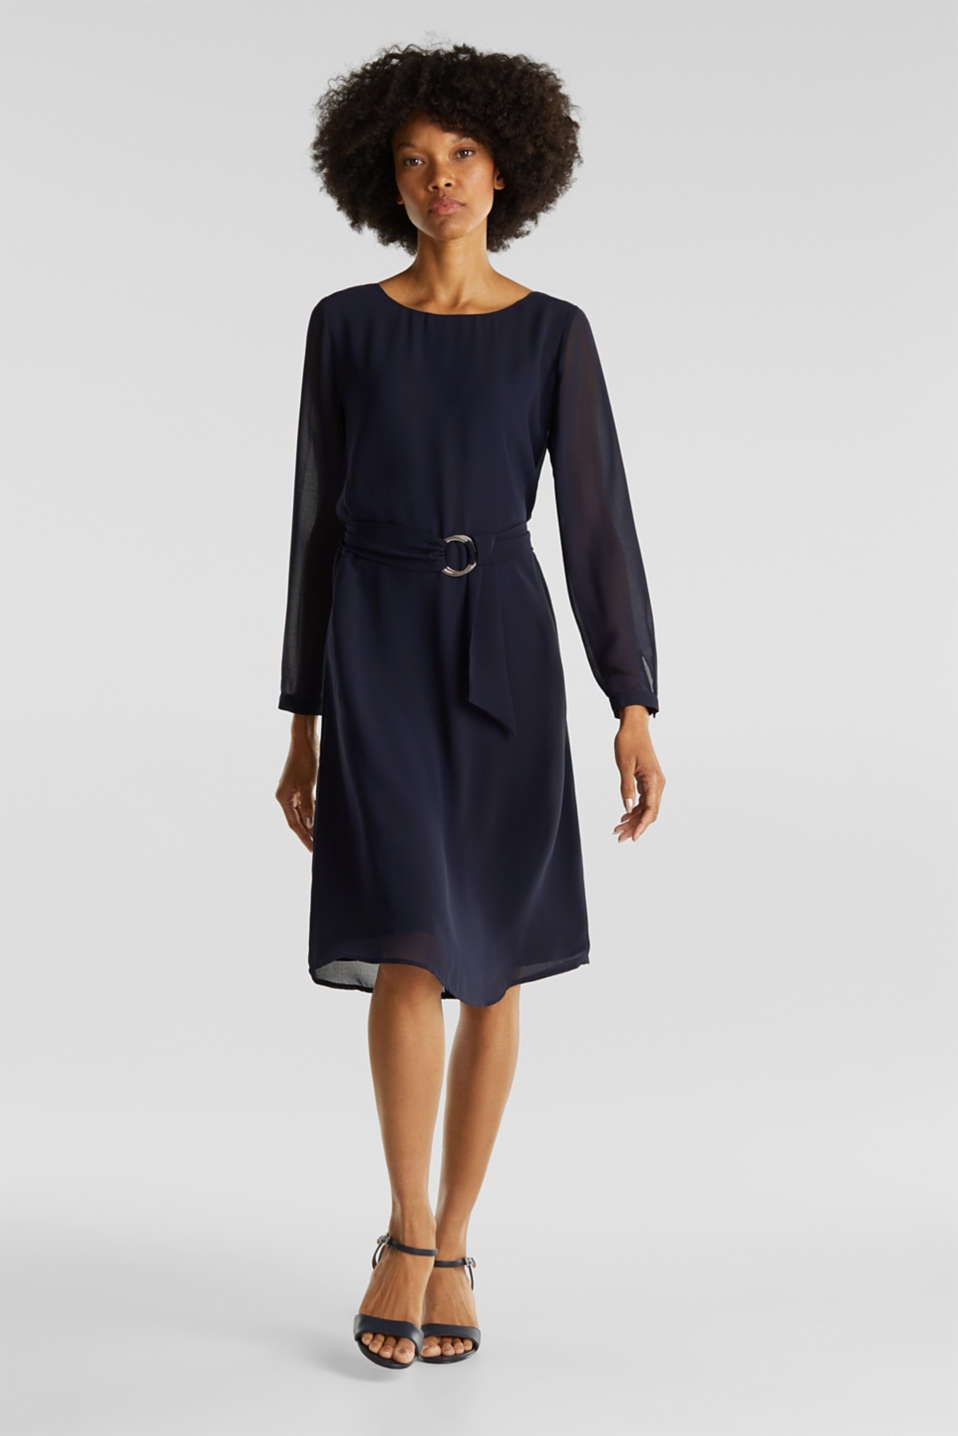 Flowing chiffon dress with a belt, NAVY, detail image number 1